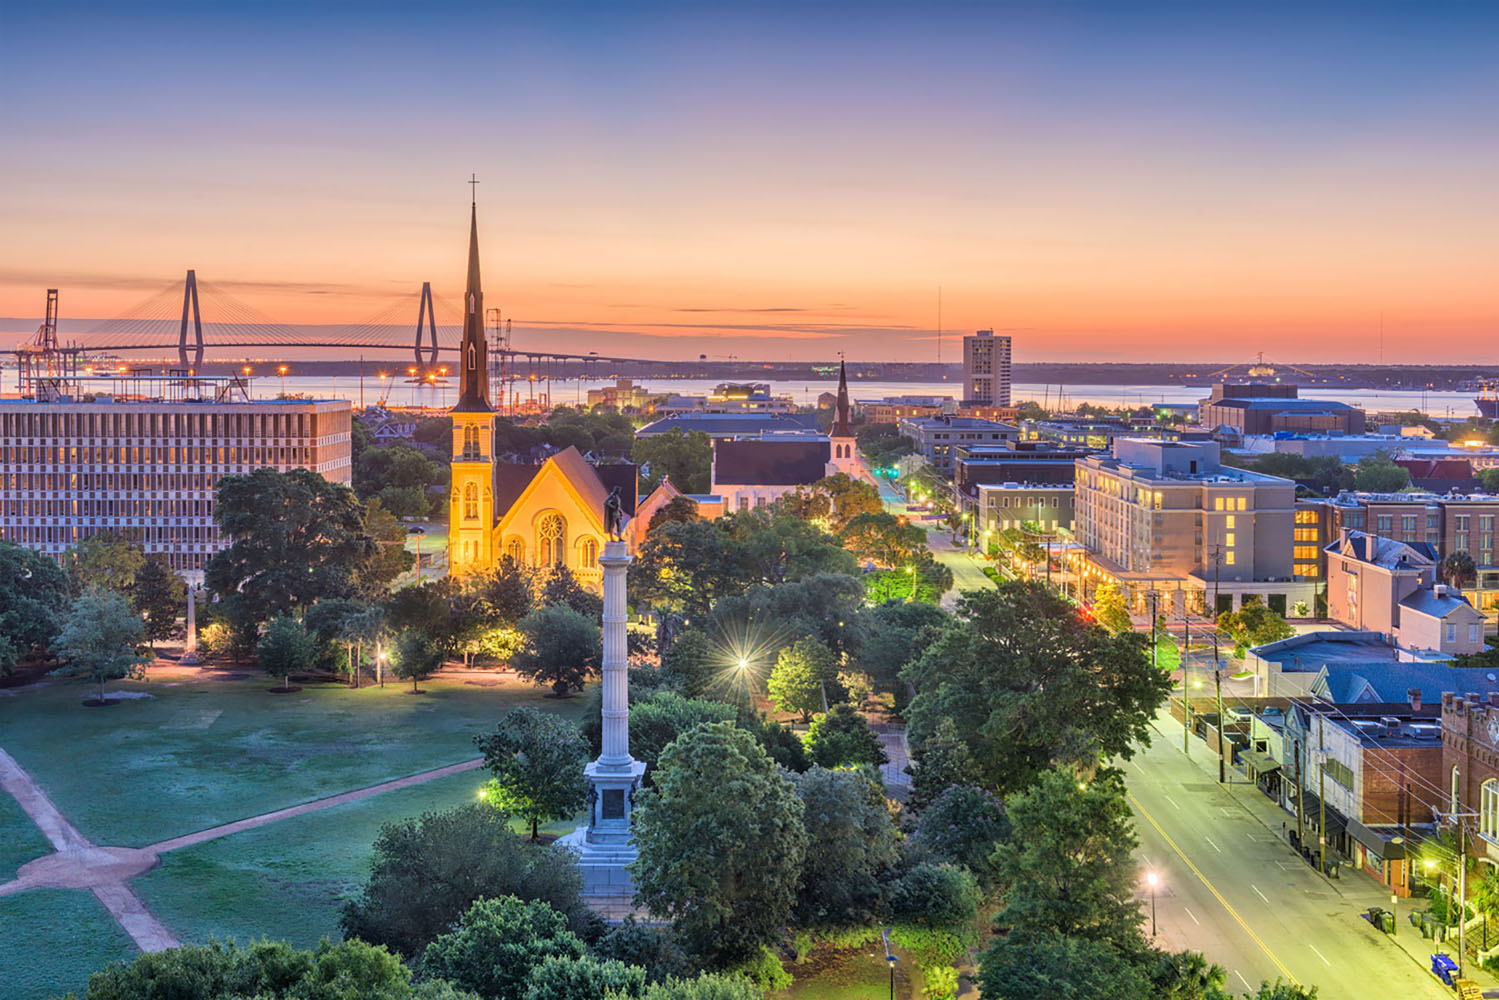 The city of Charleston, South Carolina at sunset